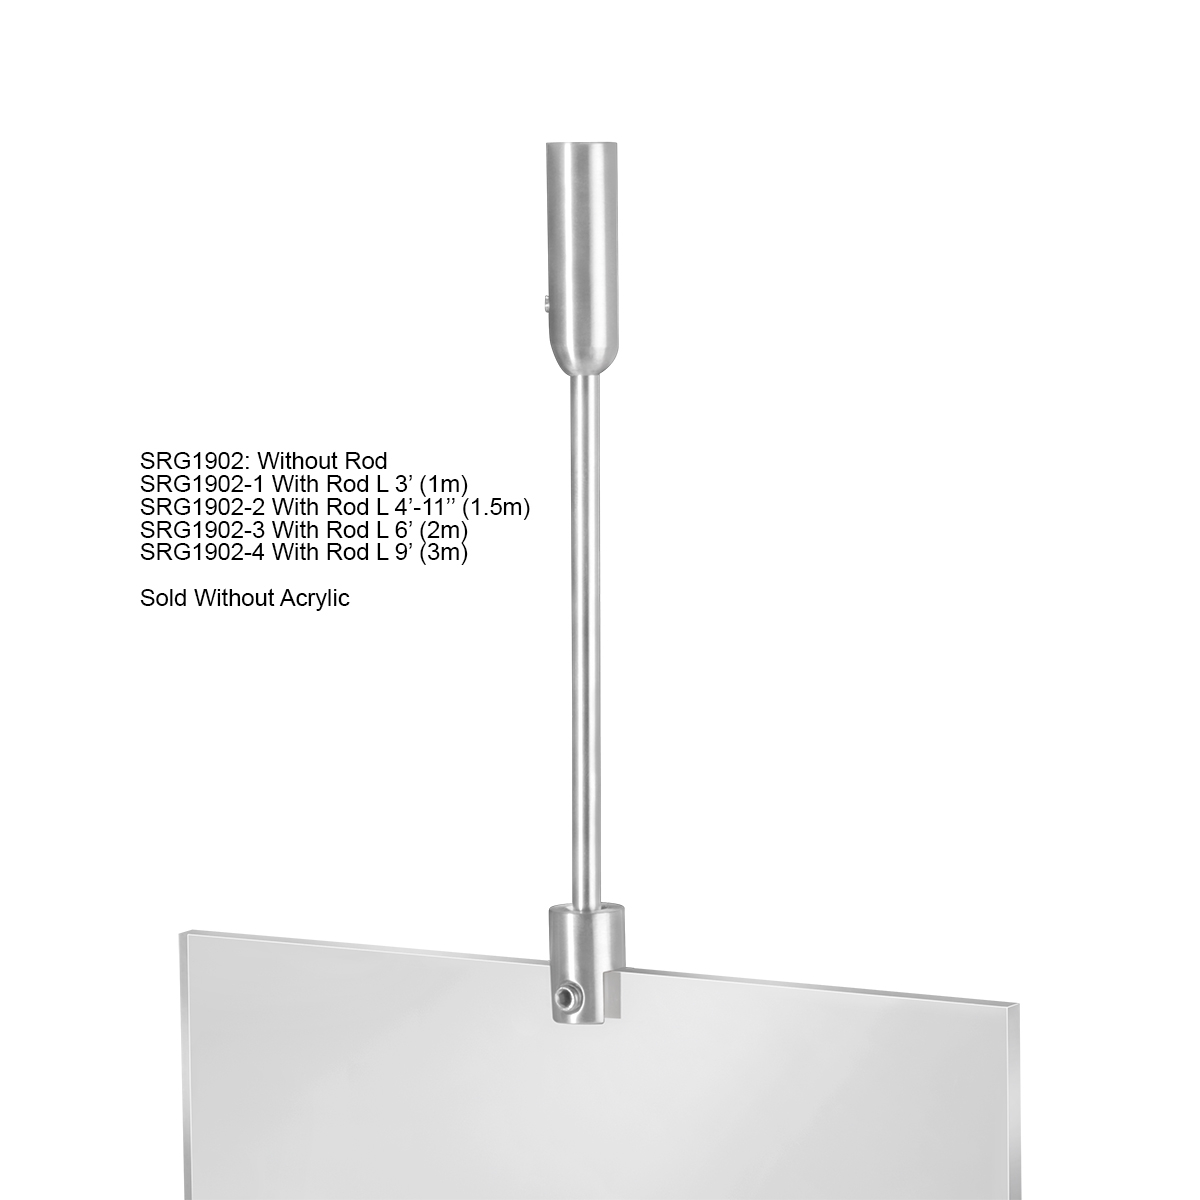 Ceiling Suspended Rod Kit - 4' 11'' - Stainless Steel